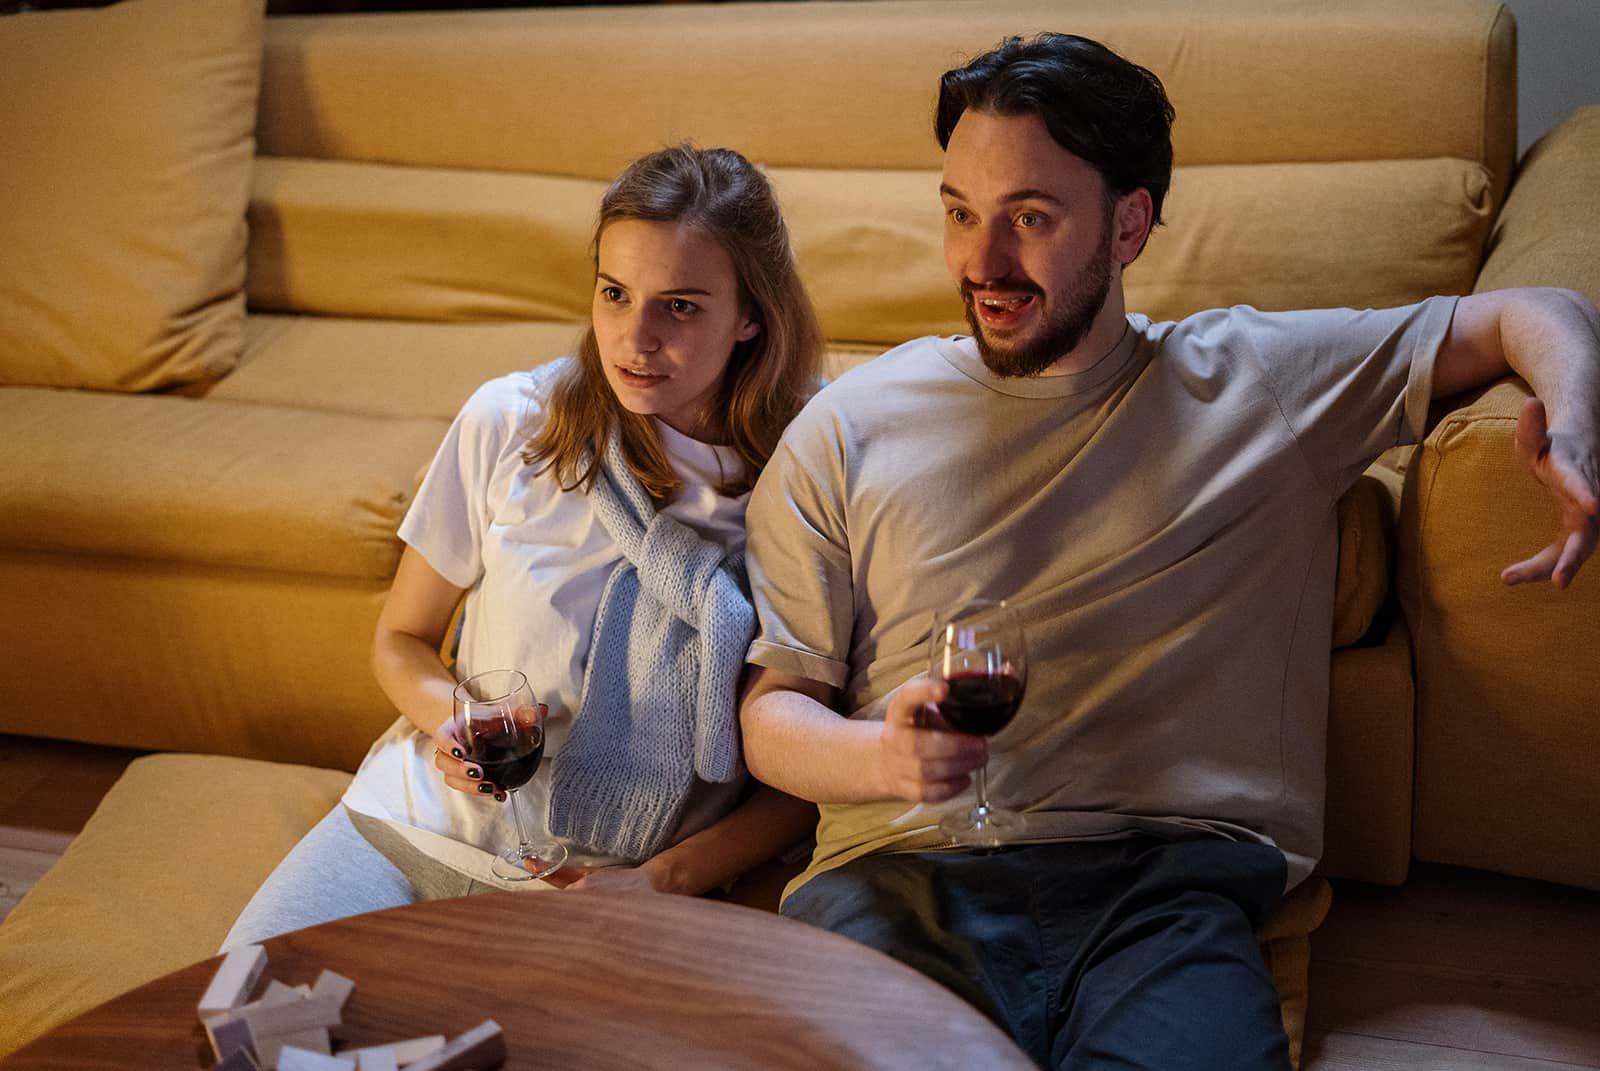 un couple buvant du vin à la maison en regardant un film ensemble